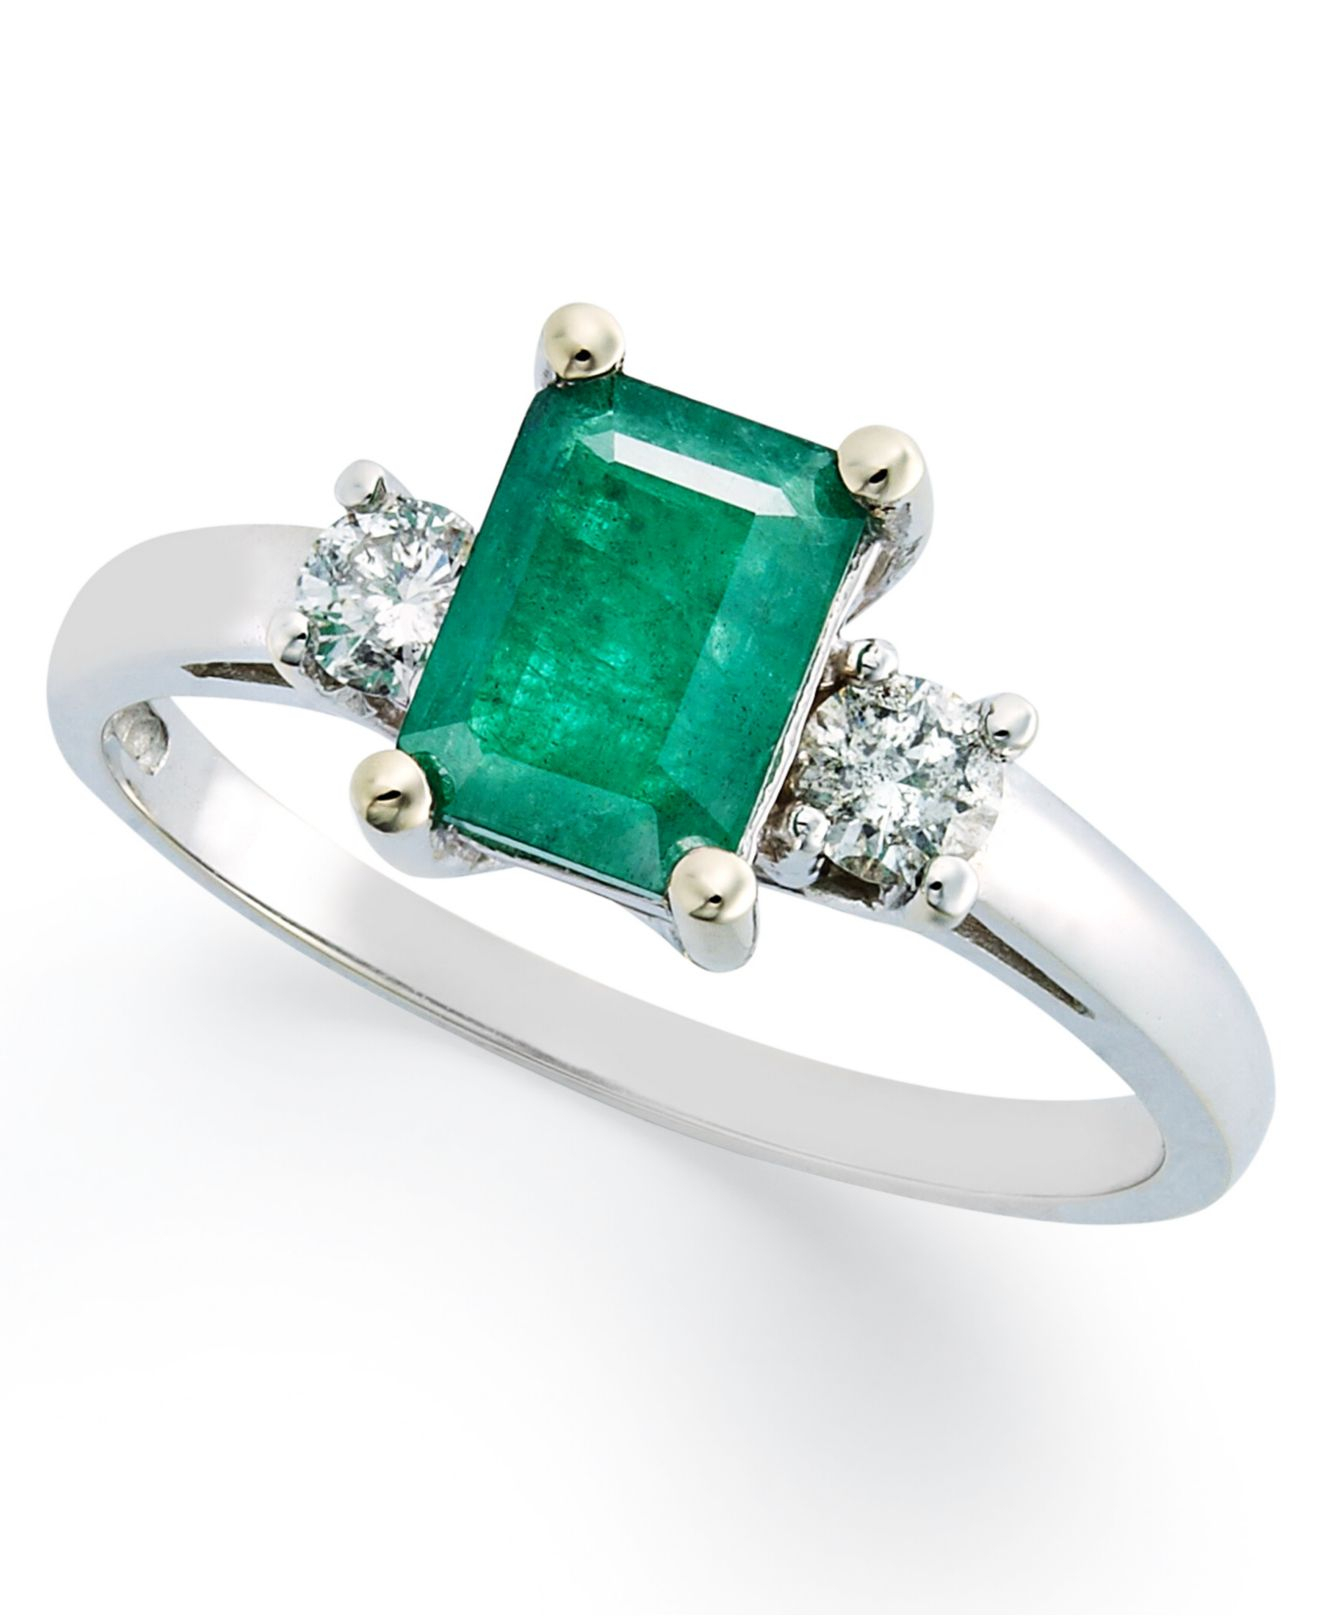 lyst macy 39 s 14k white gold ring emerald 3 4 ct t w. Black Bedroom Furniture Sets. Home Design Ideas